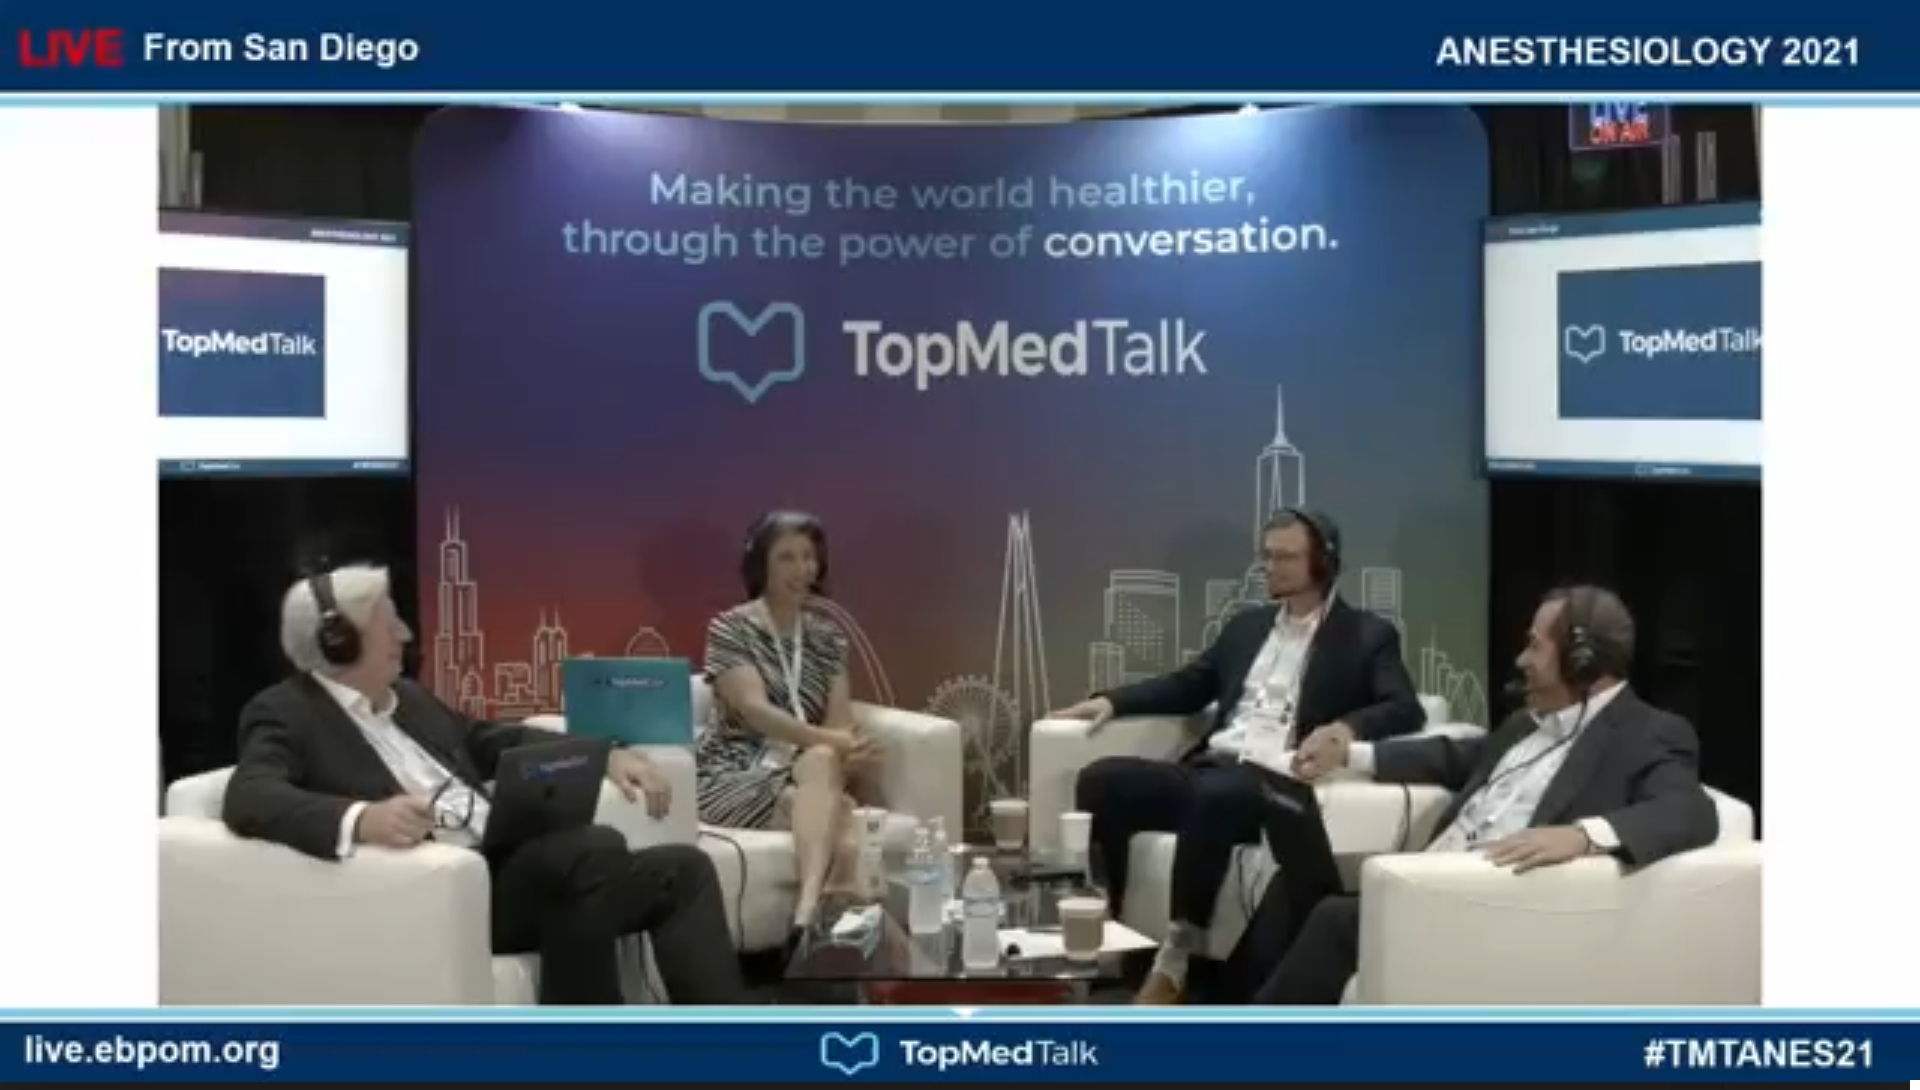 Perioperative Surgical Home (PSH) | TopMedTalk at the ASA show art